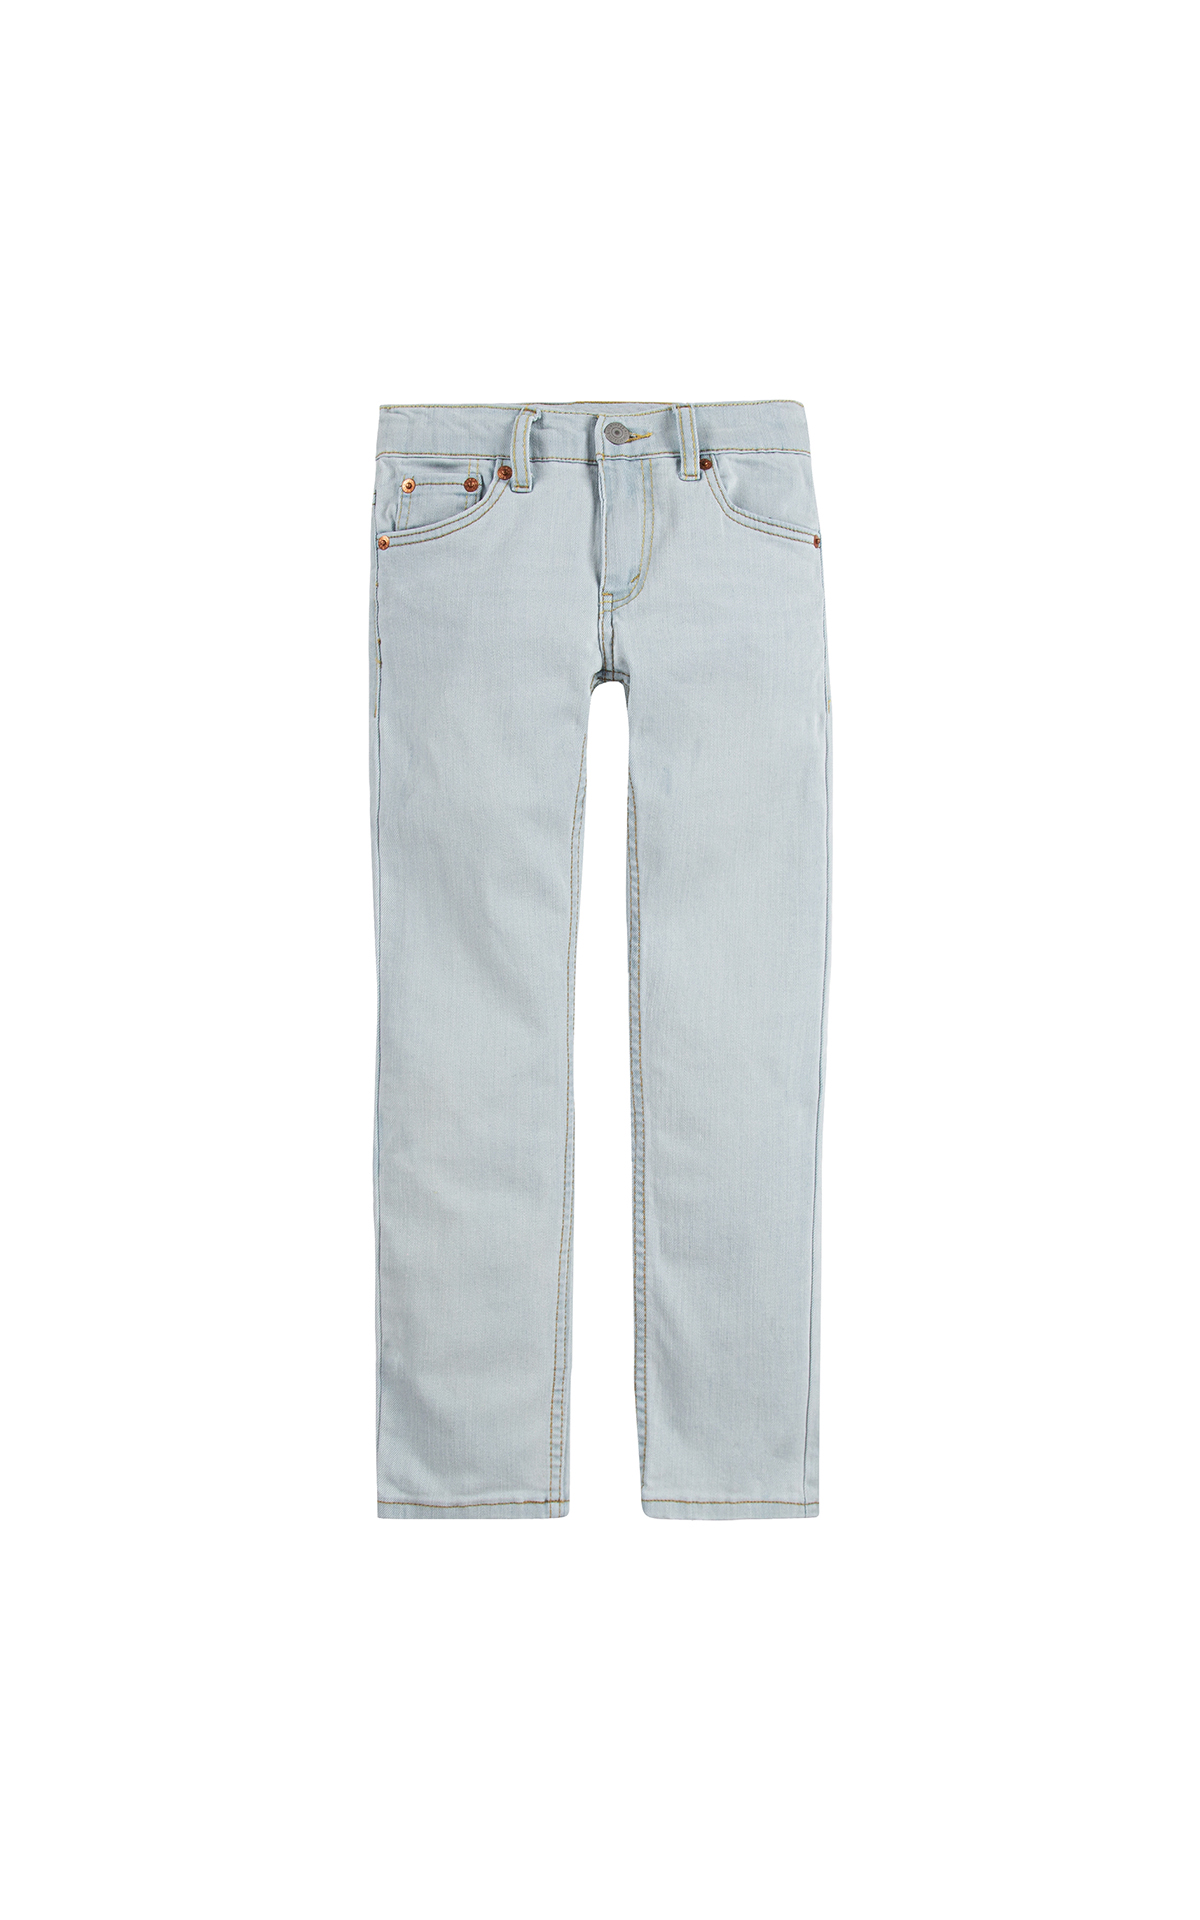 La Vallée Village Levi's kids 510 Evrydy Performance Jean